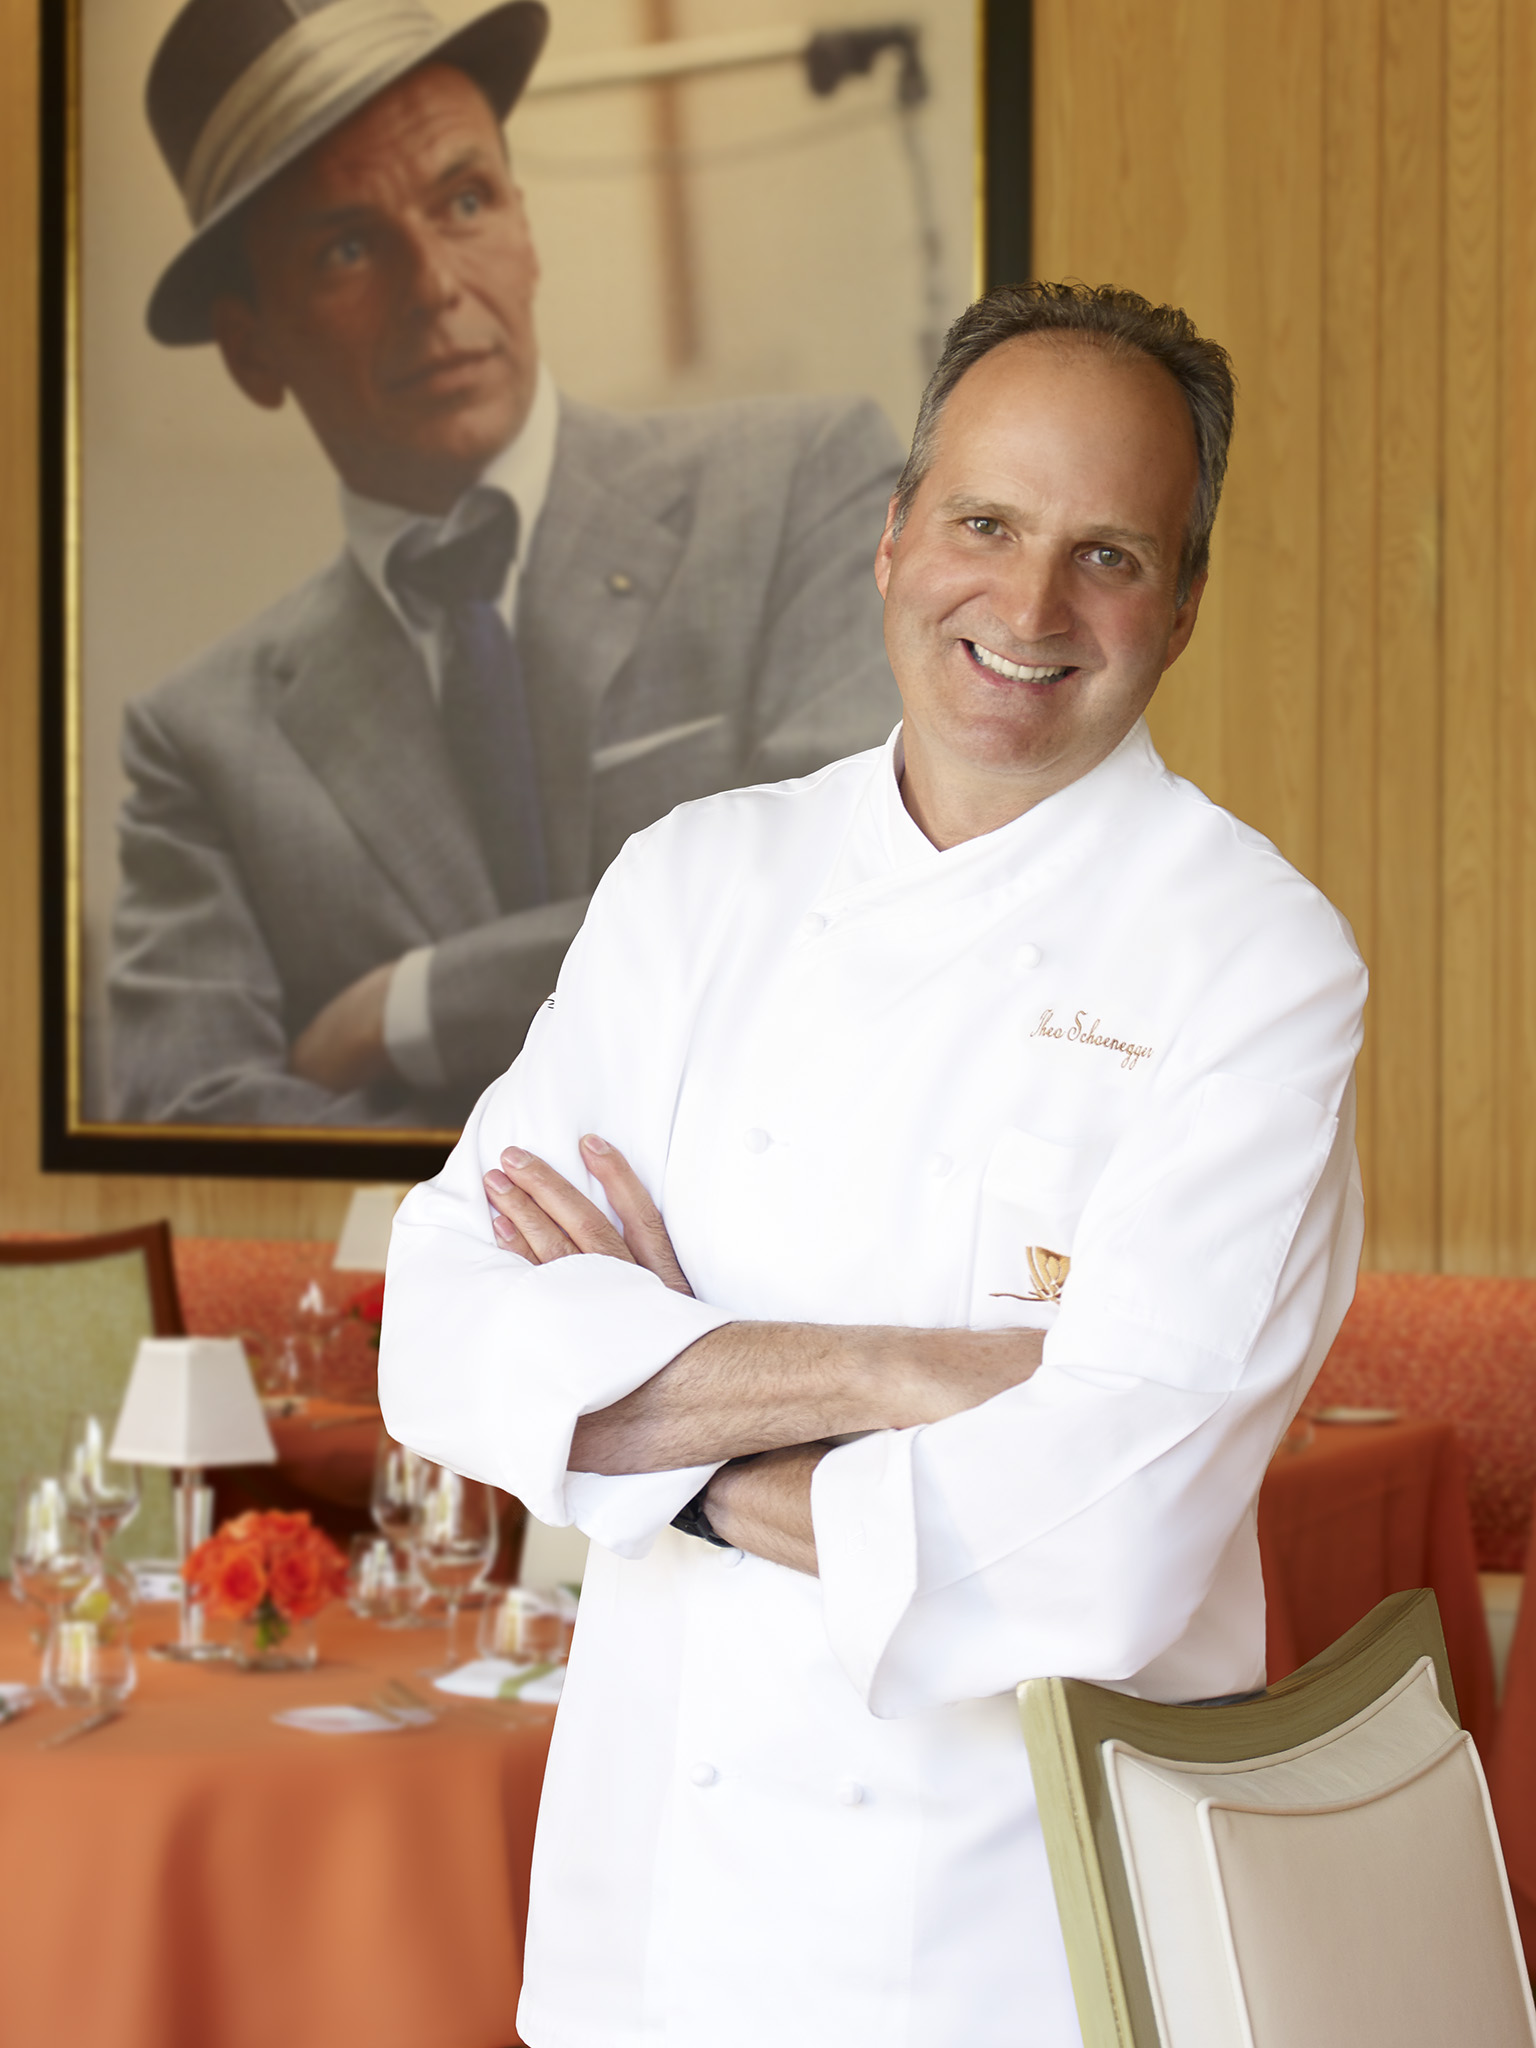 Sinatra's Former Chef Returns to the Kitchen